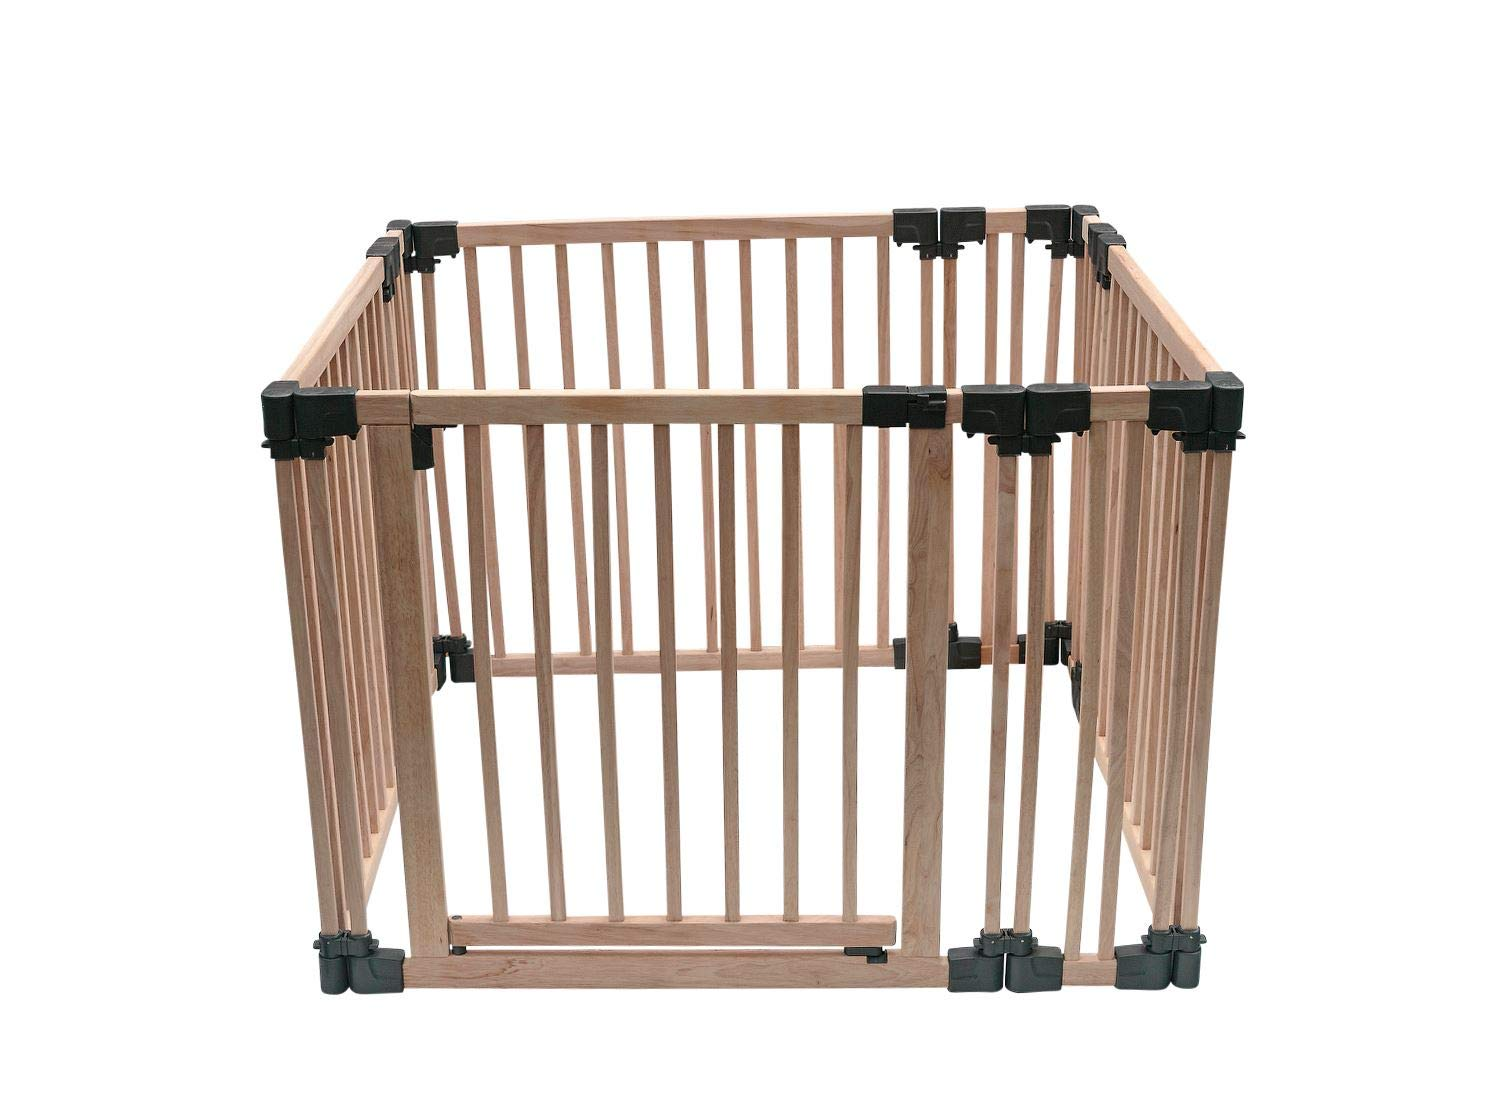 Safetots Play Pen Wooden All Sizes (Square) Safetots This configuration is complete with 1x 80cm gate panel, 3x 80cm panels and 4x 20cm panels. Made from premium grade wood designed to compliment all home interiors. Extra Wide Door Section for Easy Access, with simple slide and lift opening mechanism. 1